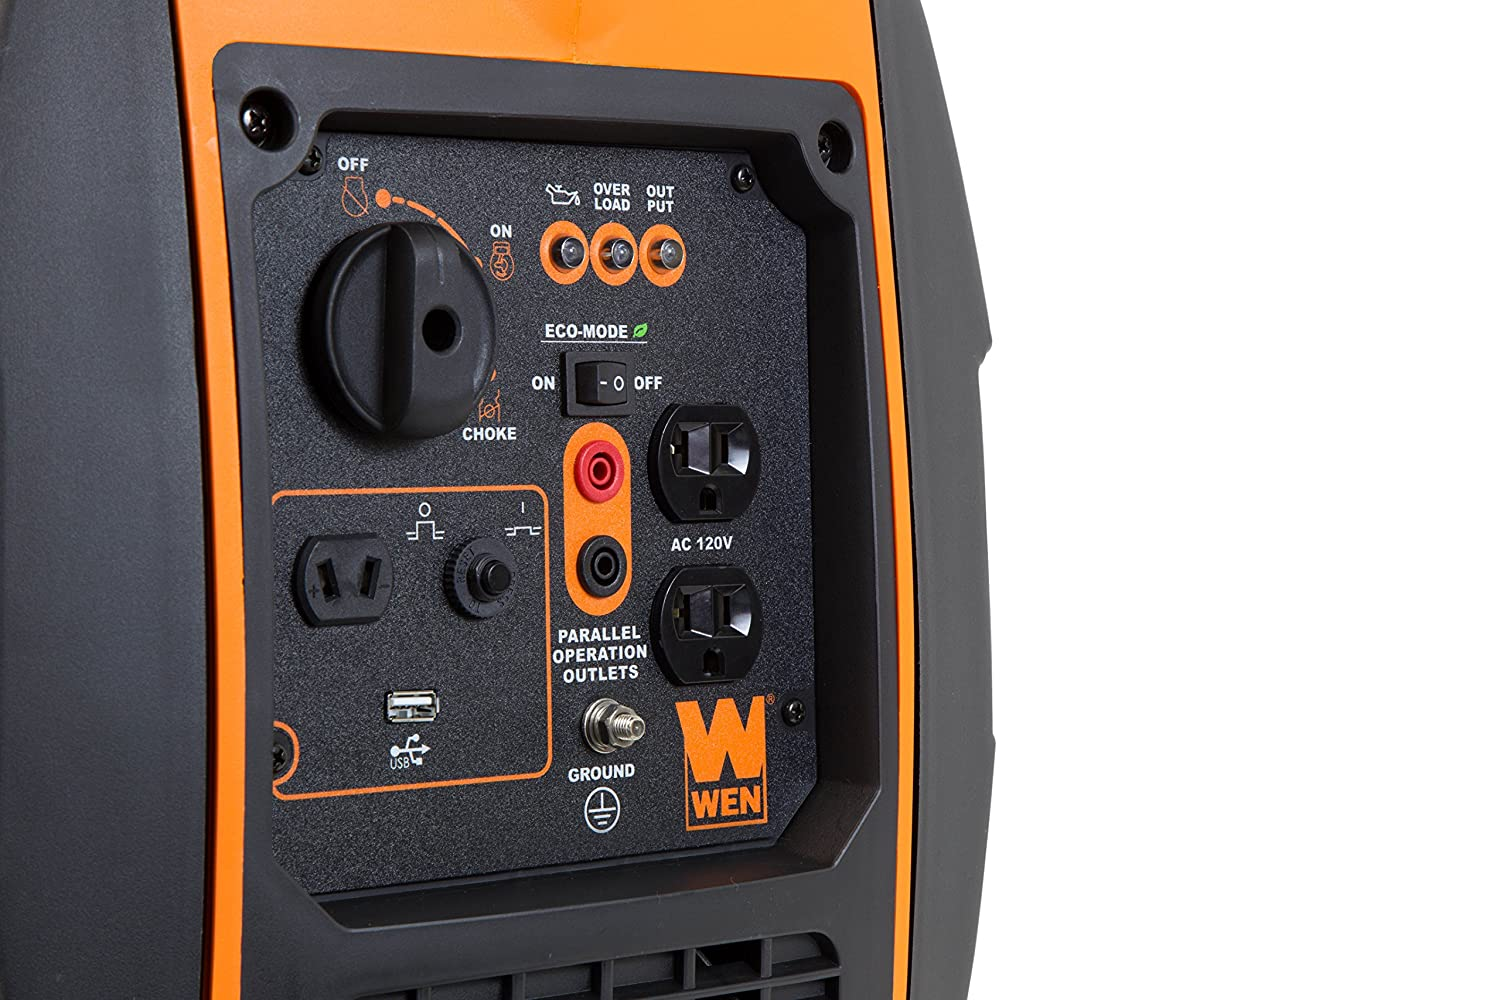 WEN 56200i has a got an well designed control panel which is very easy to use